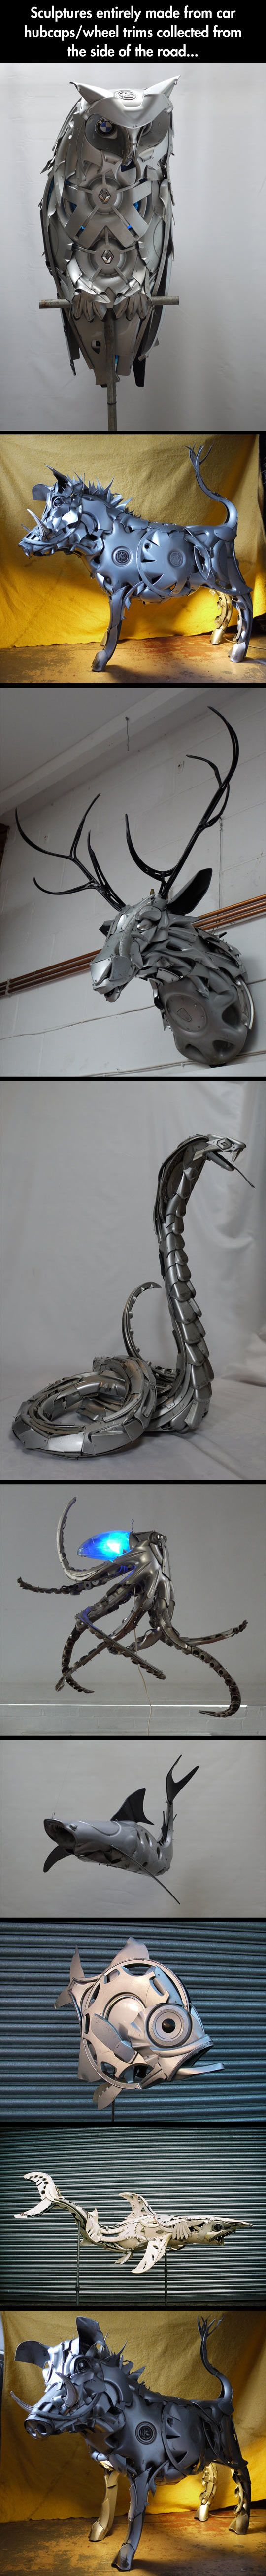 Epic Sculptures From Car Parts